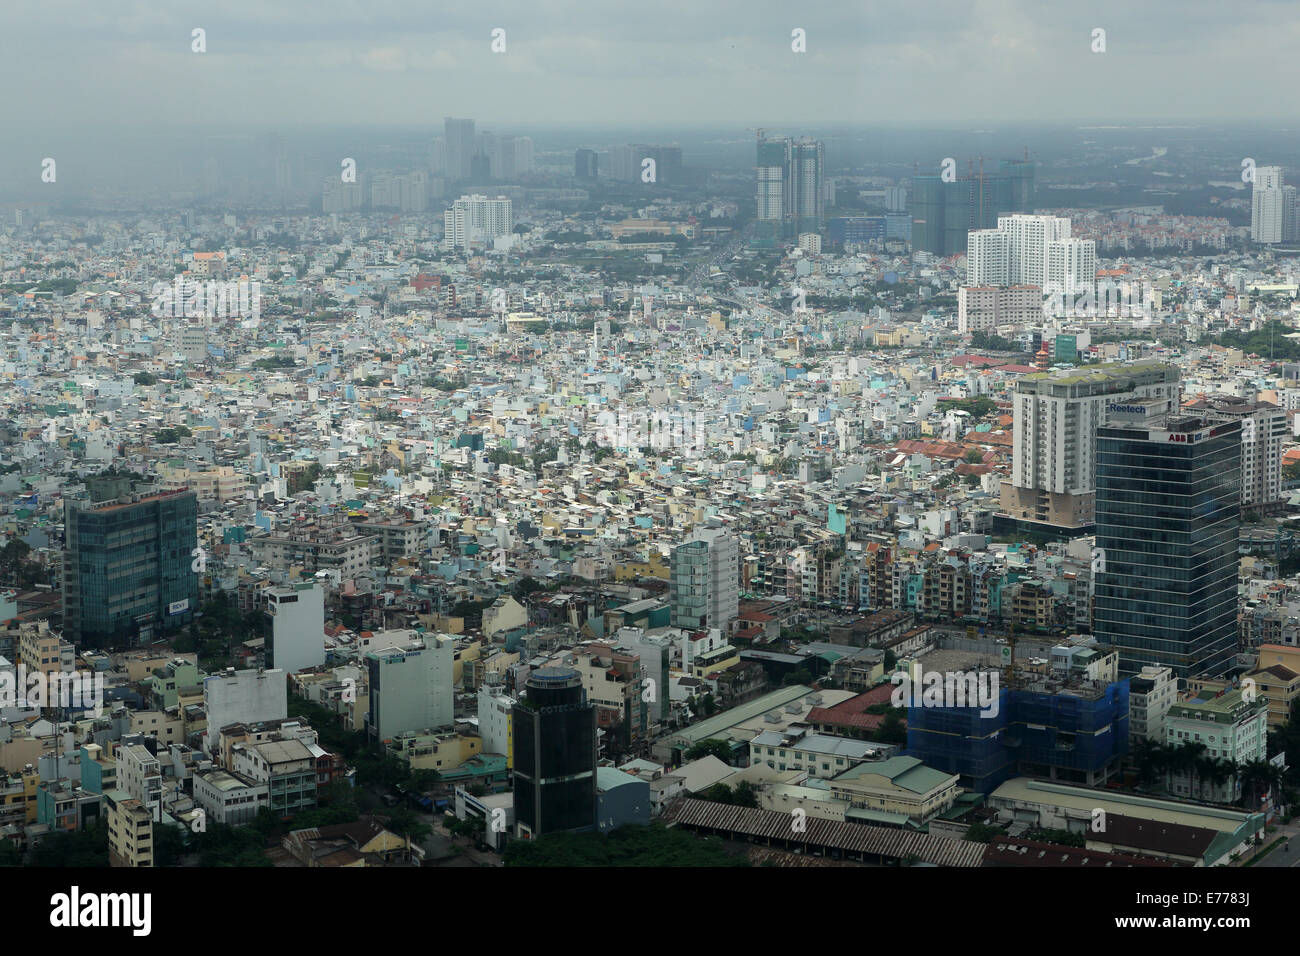 Ho Chi Minh City in Vietnam. The city, formerly known as Saigon, is seen from the viewing platform of Bitexco Tower. - Stock Image